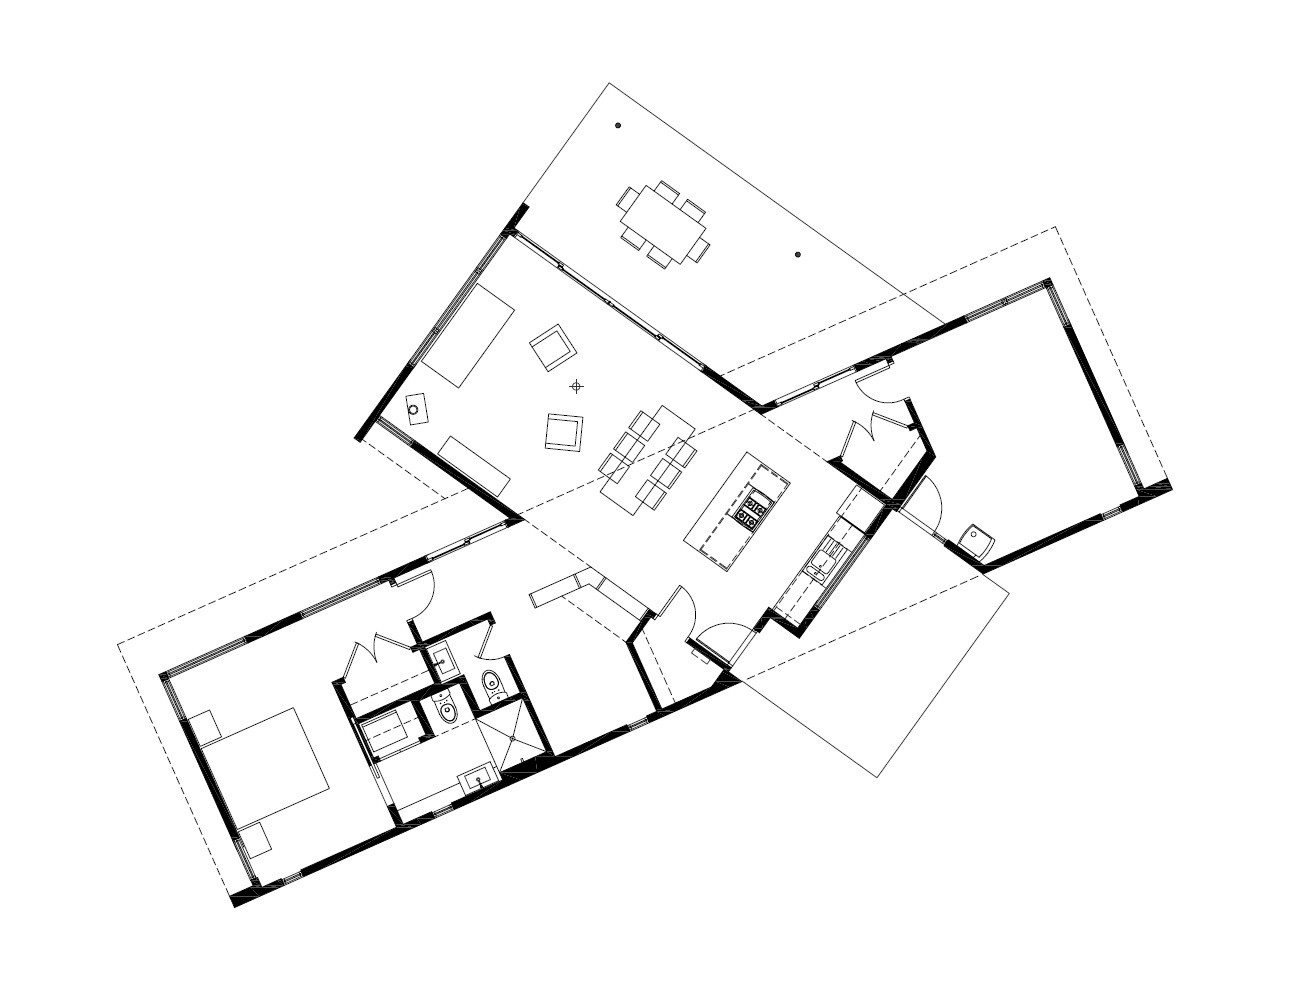 5602fd22e58ece477400007a Ritual House Of Yoga Gocstudio Floor Plan in addition We Architecture Triangular House in addition 1345 Architecture also 571535008937183187 likewise 5017f87128ba0d49f50012b6 Atriumtower Hiphouse Zwolle Atelier Kempe Thill 2nd Floor Plan. on house plans